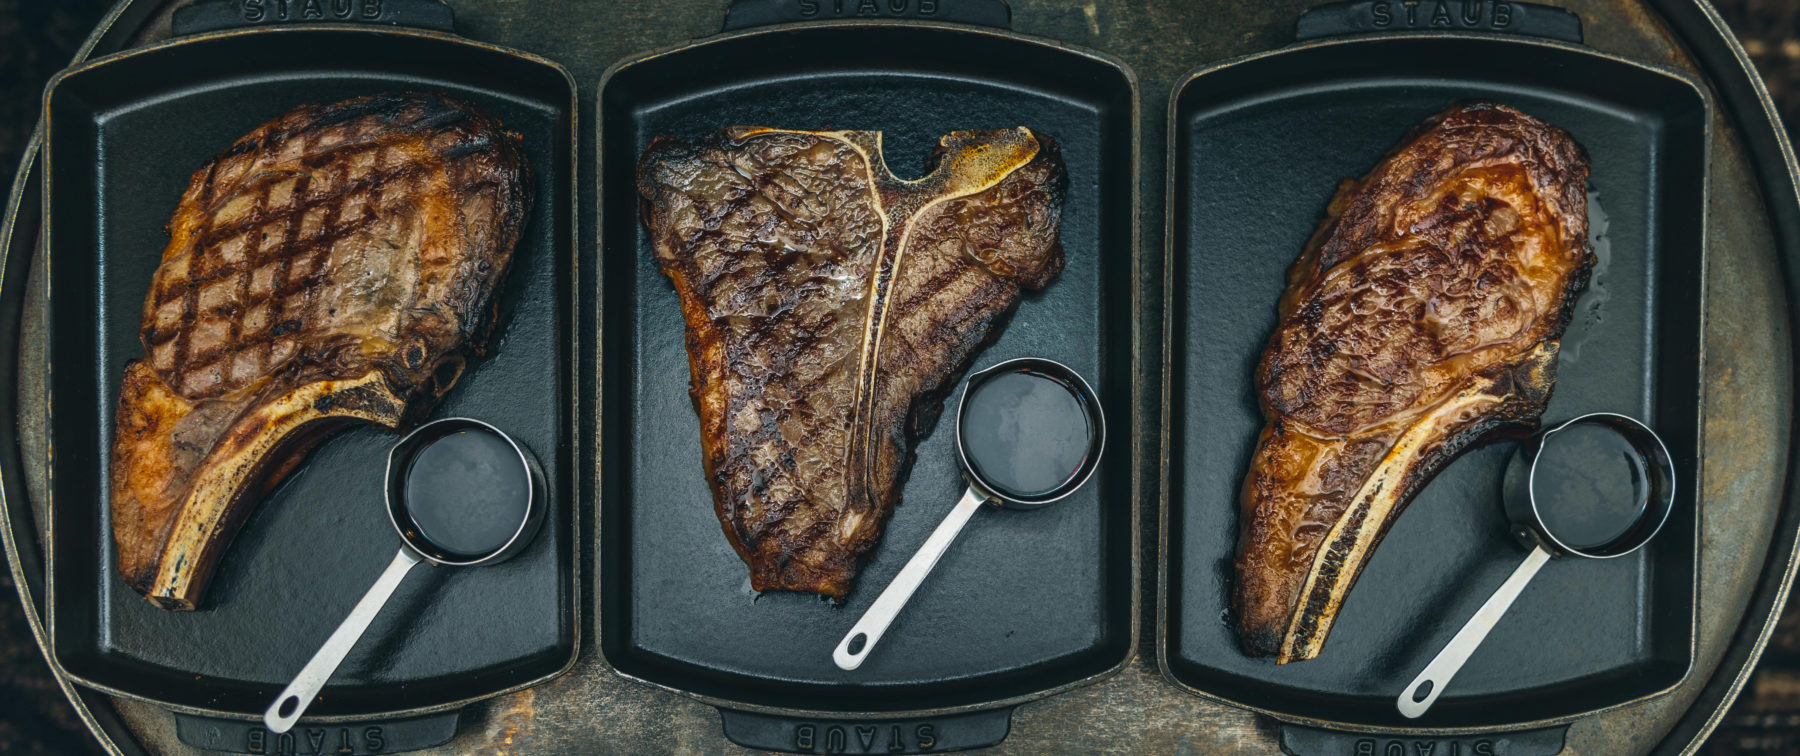 Home Articles Lifestyle Food Drink It S Official These Are The 10 Best Steak Restaurants In London